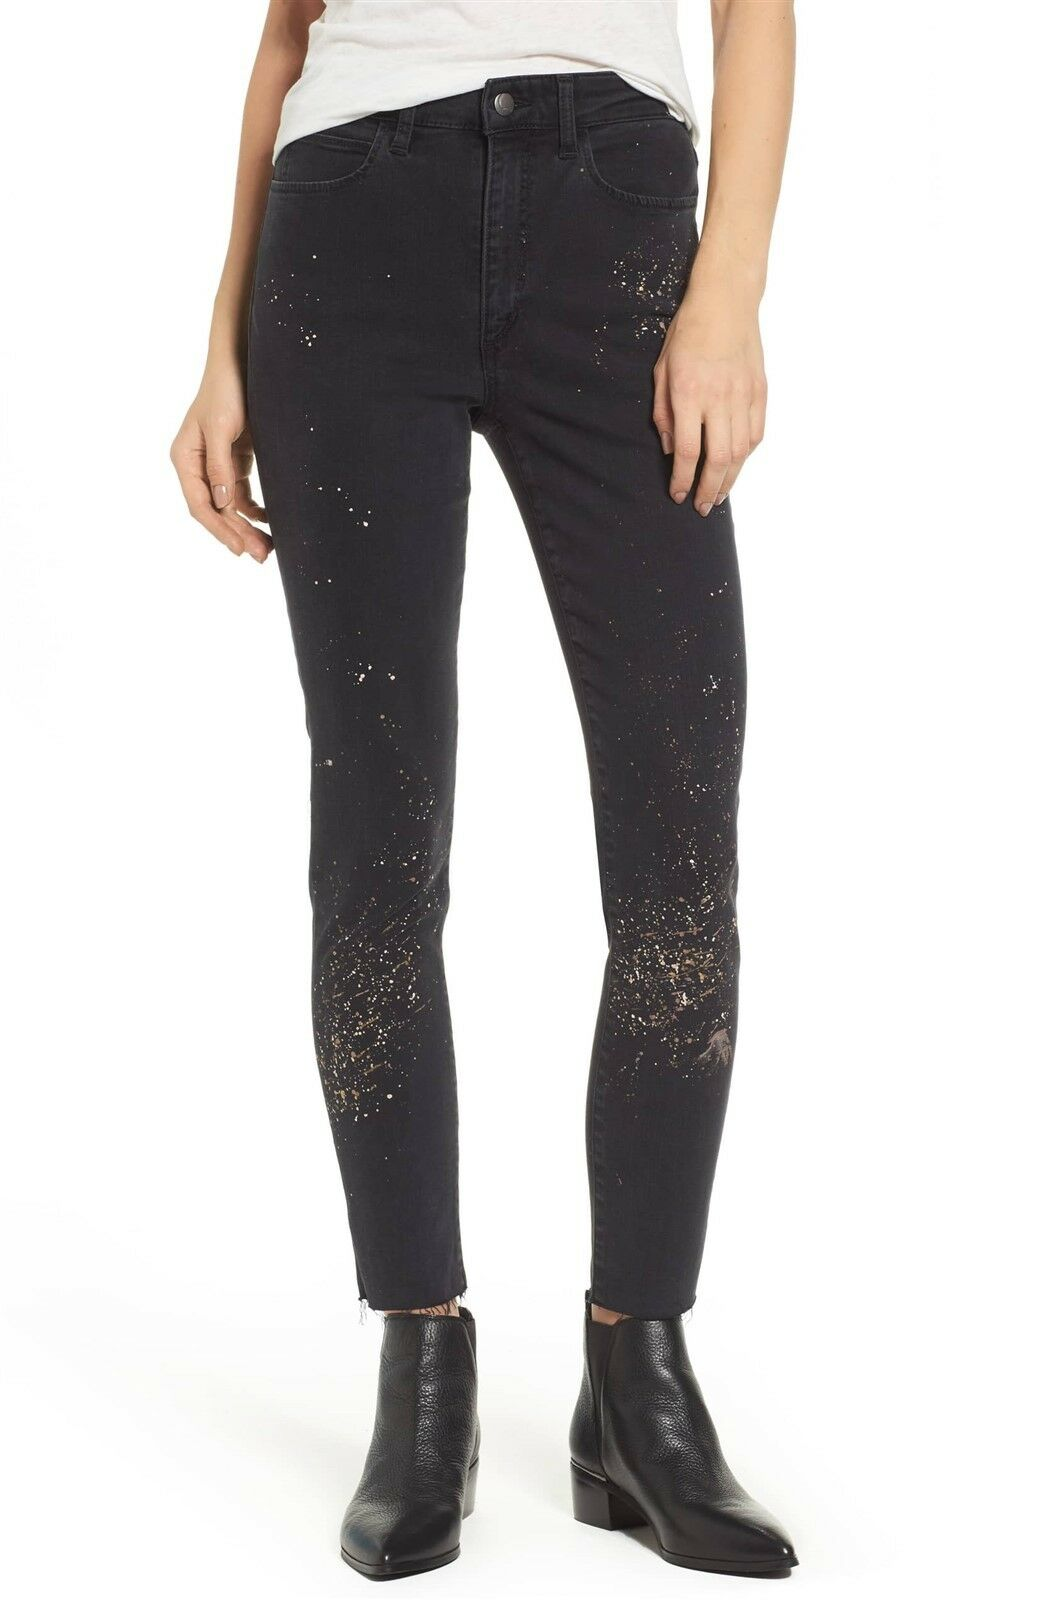 Joes Jeans Charlie Cotton Metallic Splatter Ankle Skinny Jeans Size 32  NWT